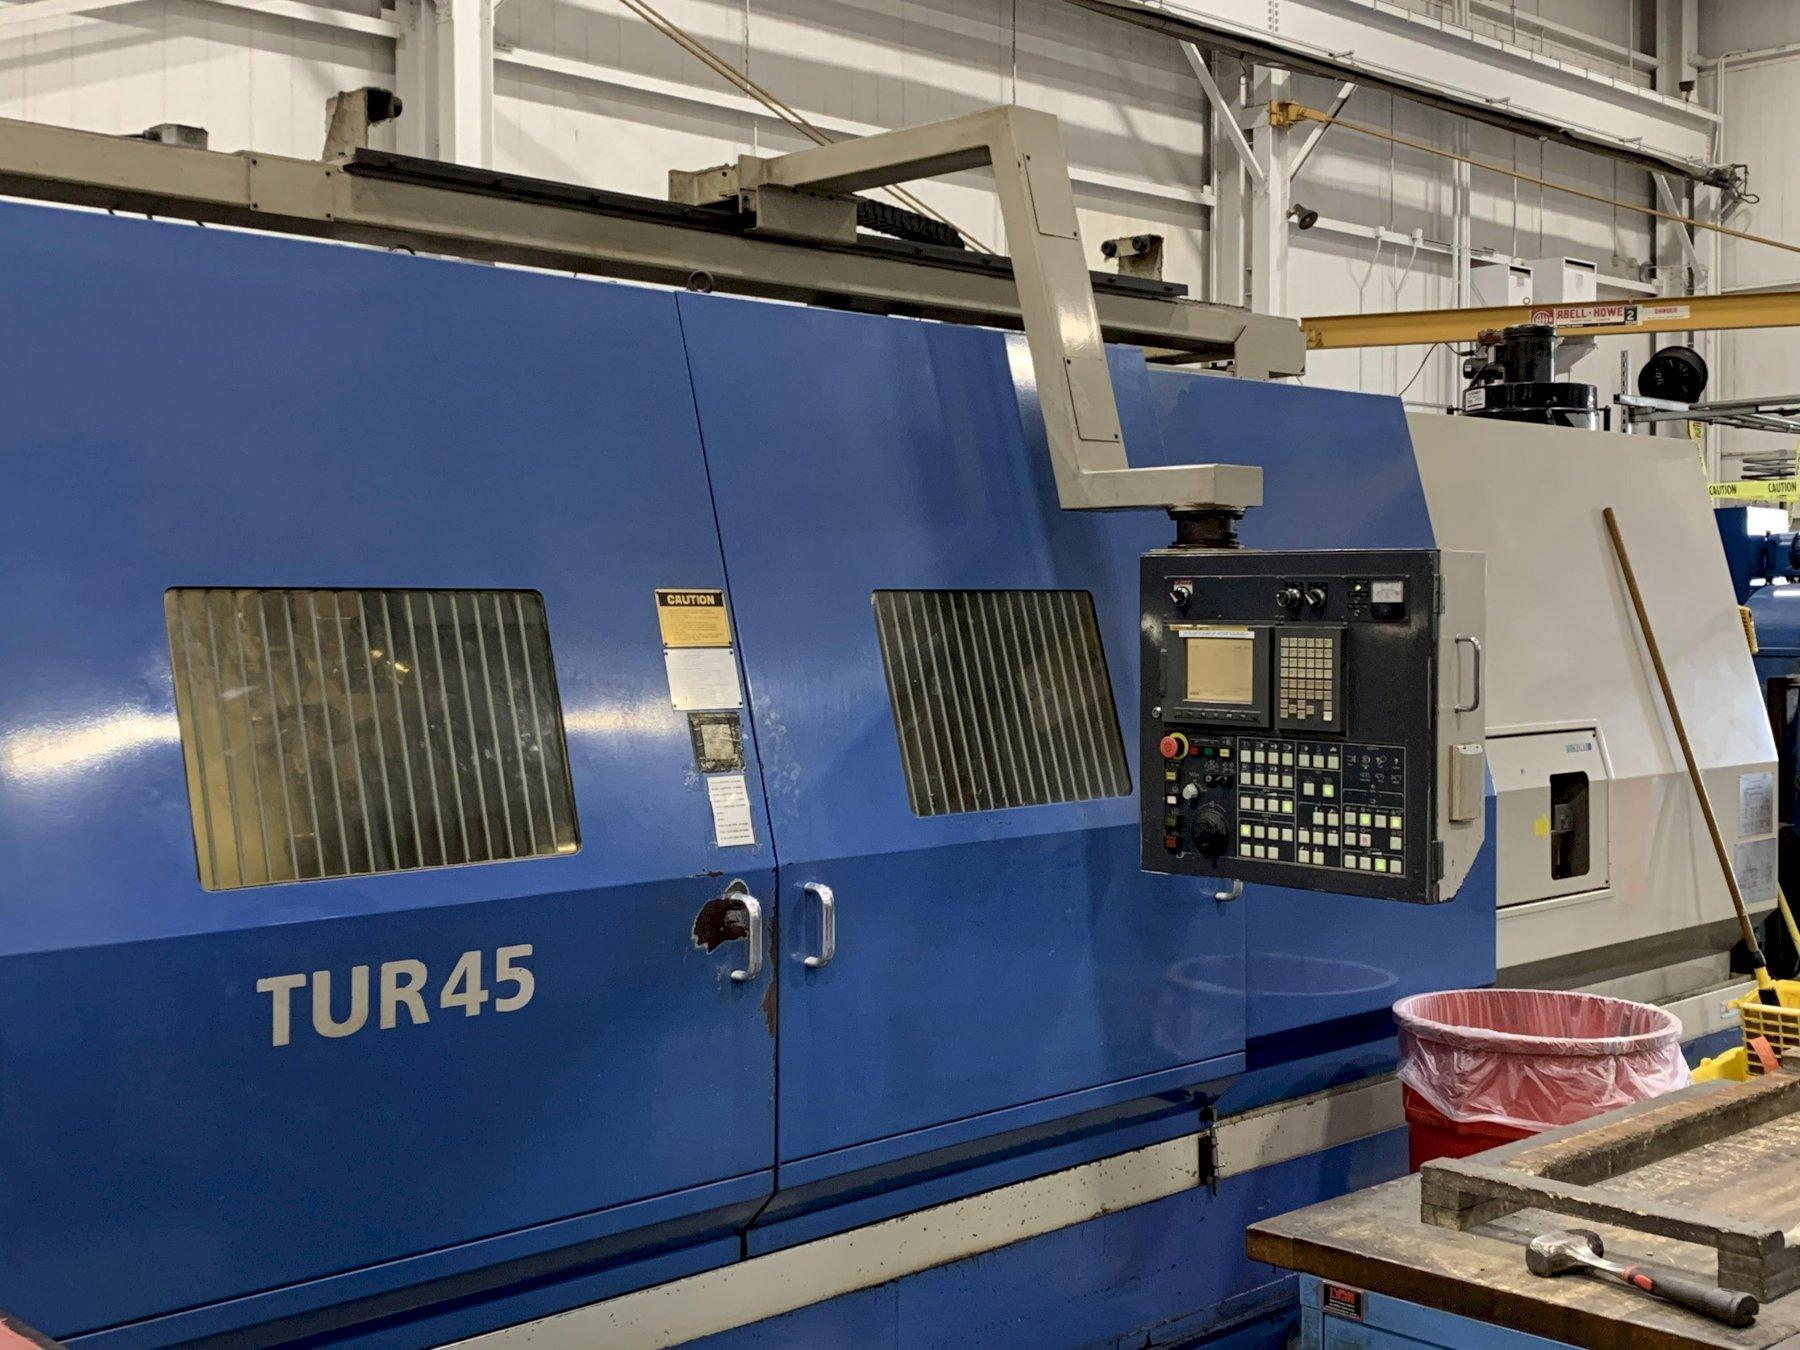 Ikegai Model TUR45/CD3000 CNC Universal Milling and Turning Center